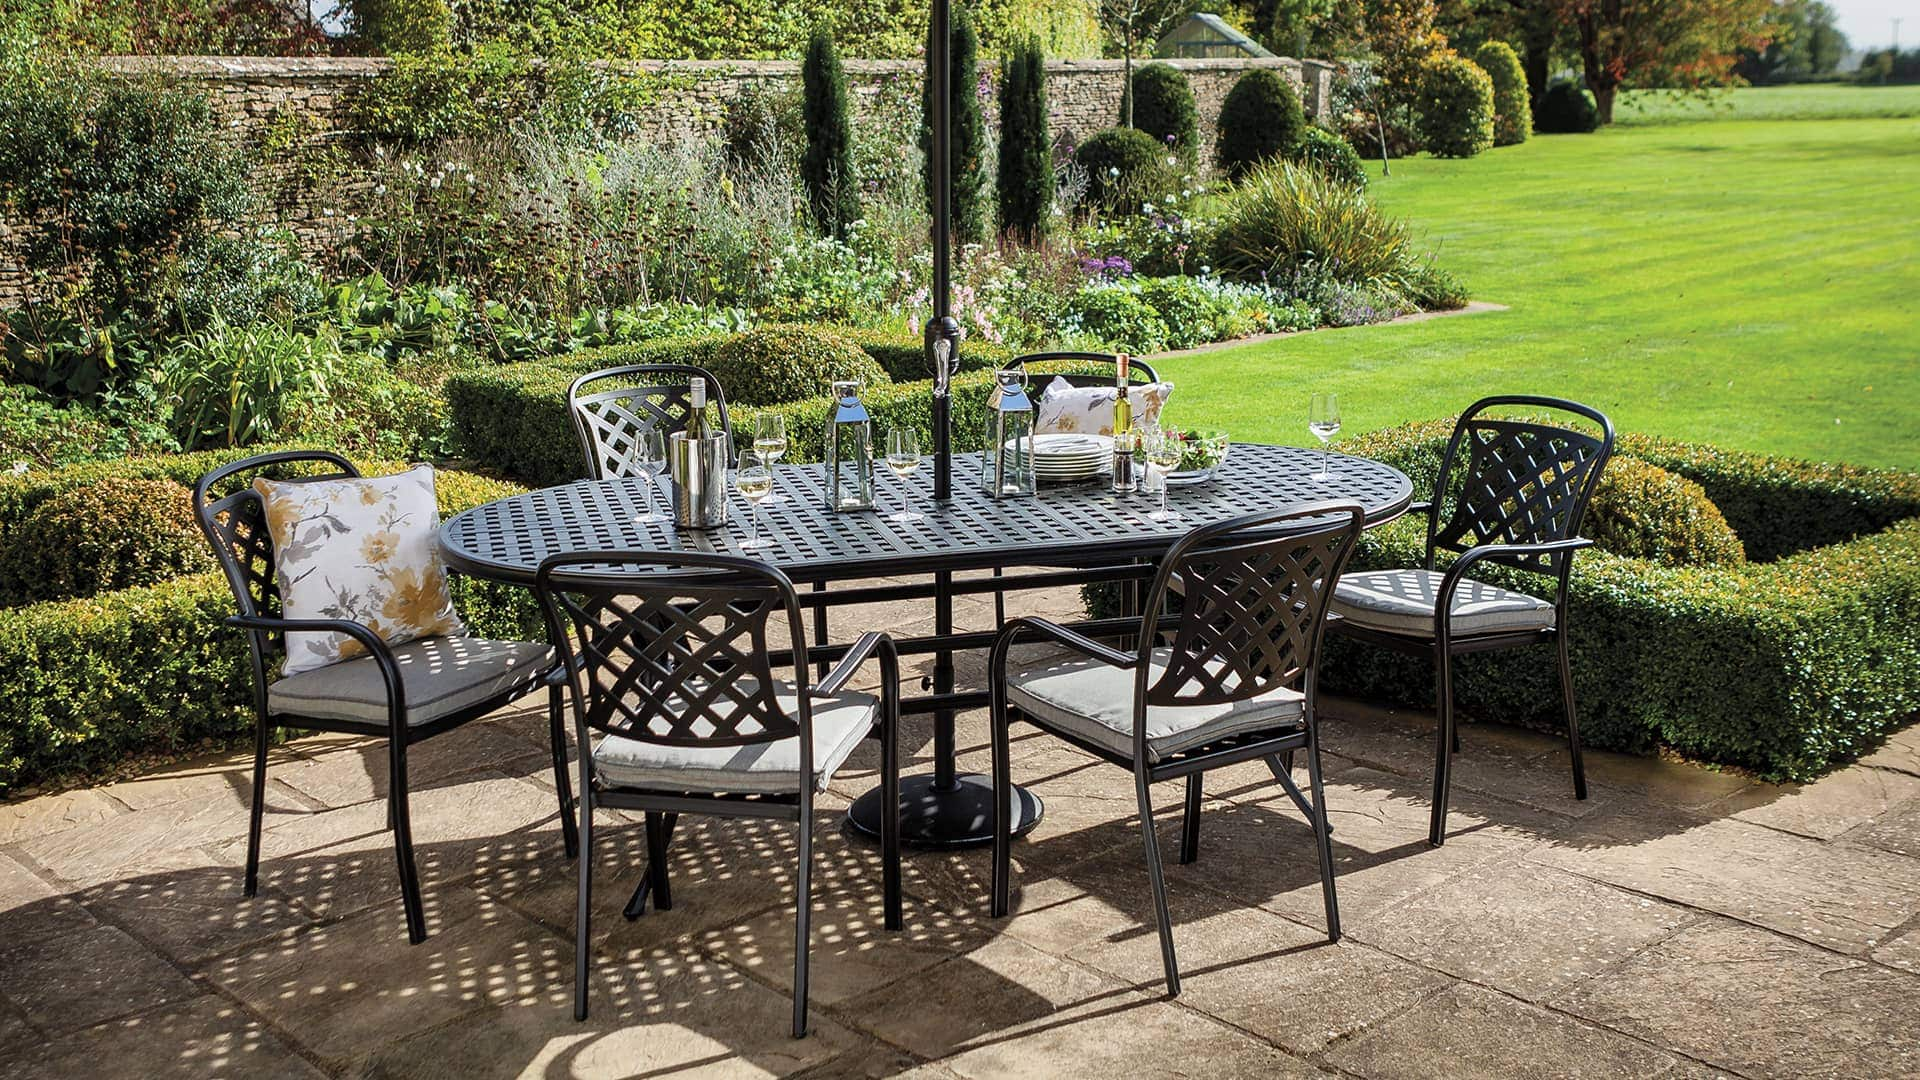 home hartman outdoor furniture products uk - Garden Furniture 4 U Ltd